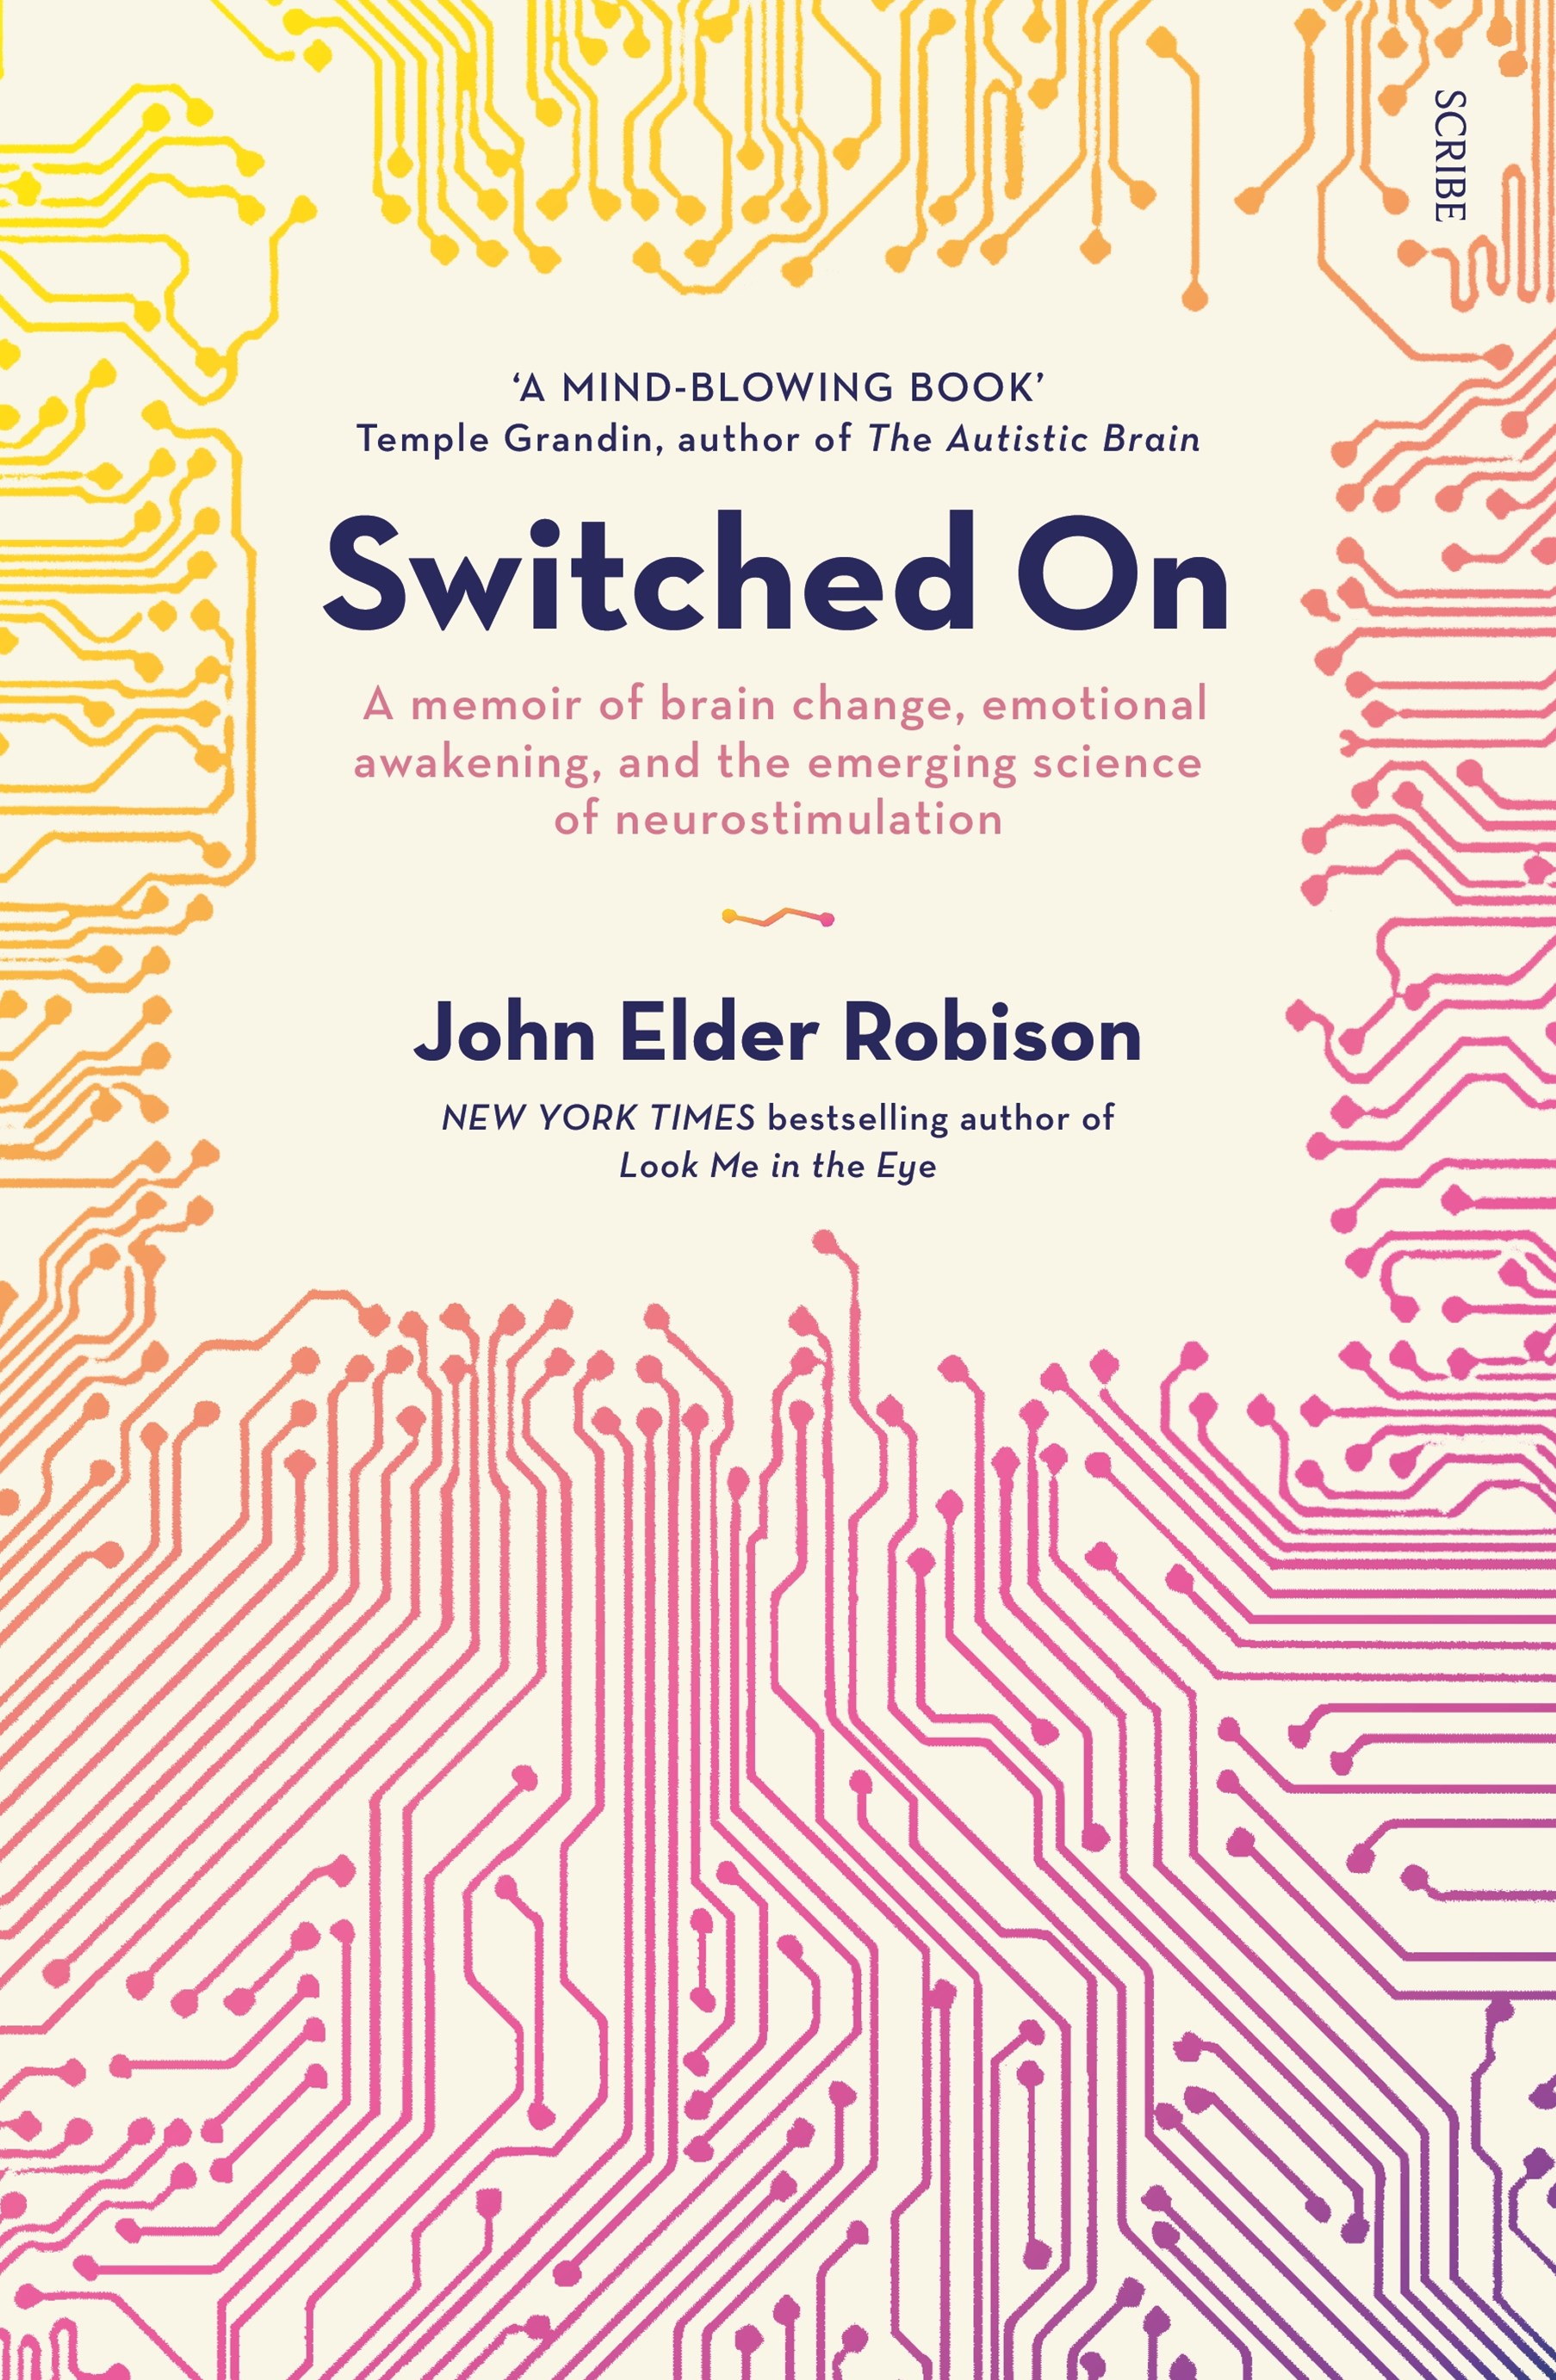 Switched On: A Memoir Of Brain Change, Emotional Awakening,And The Emerging Science Of Neurostimulation